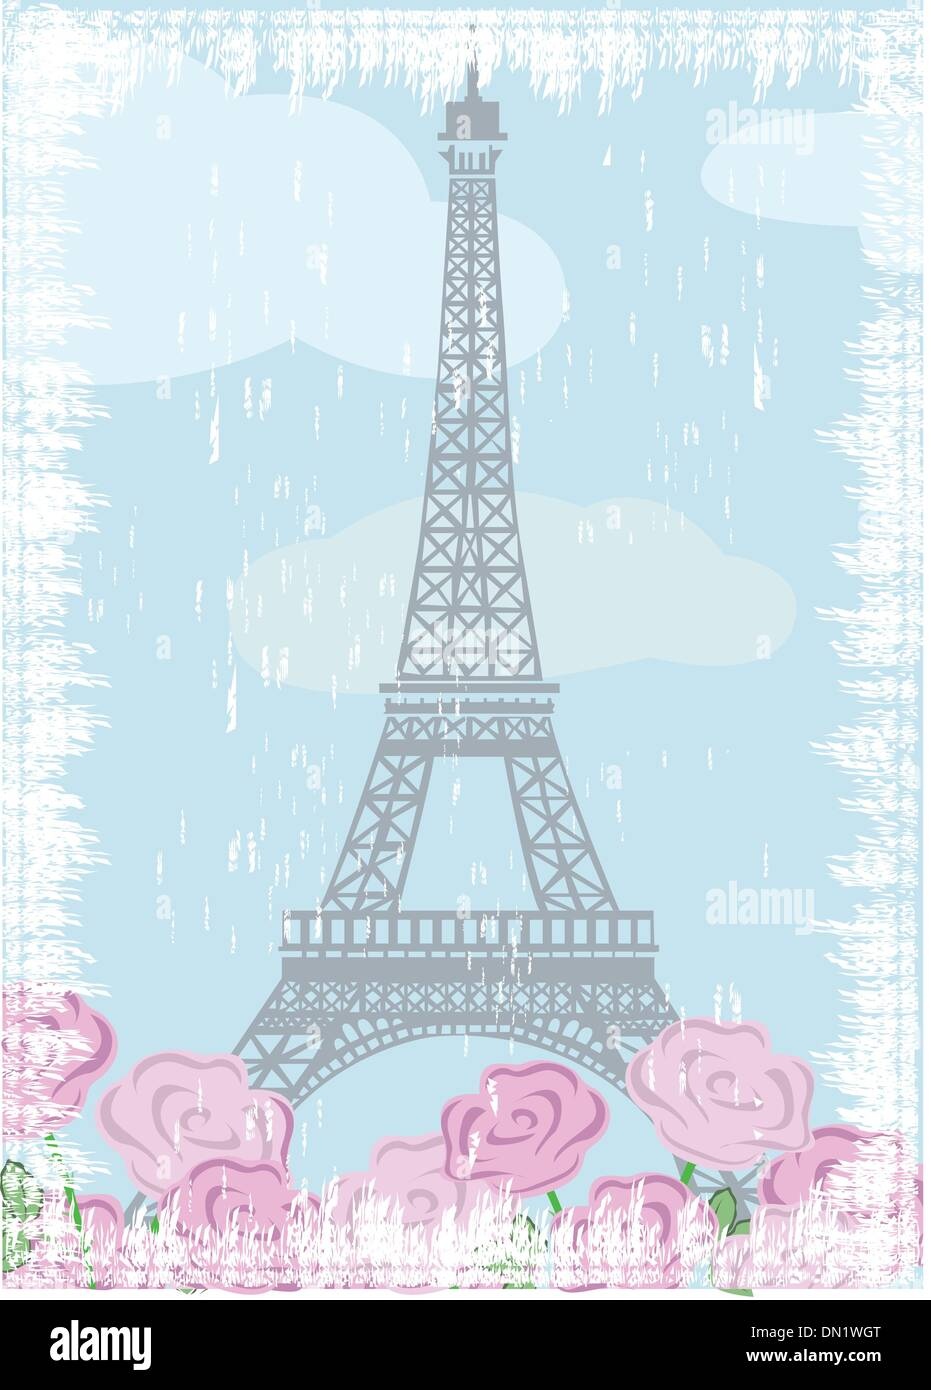 Grunge Eiffel tower with roses - Stock Vector